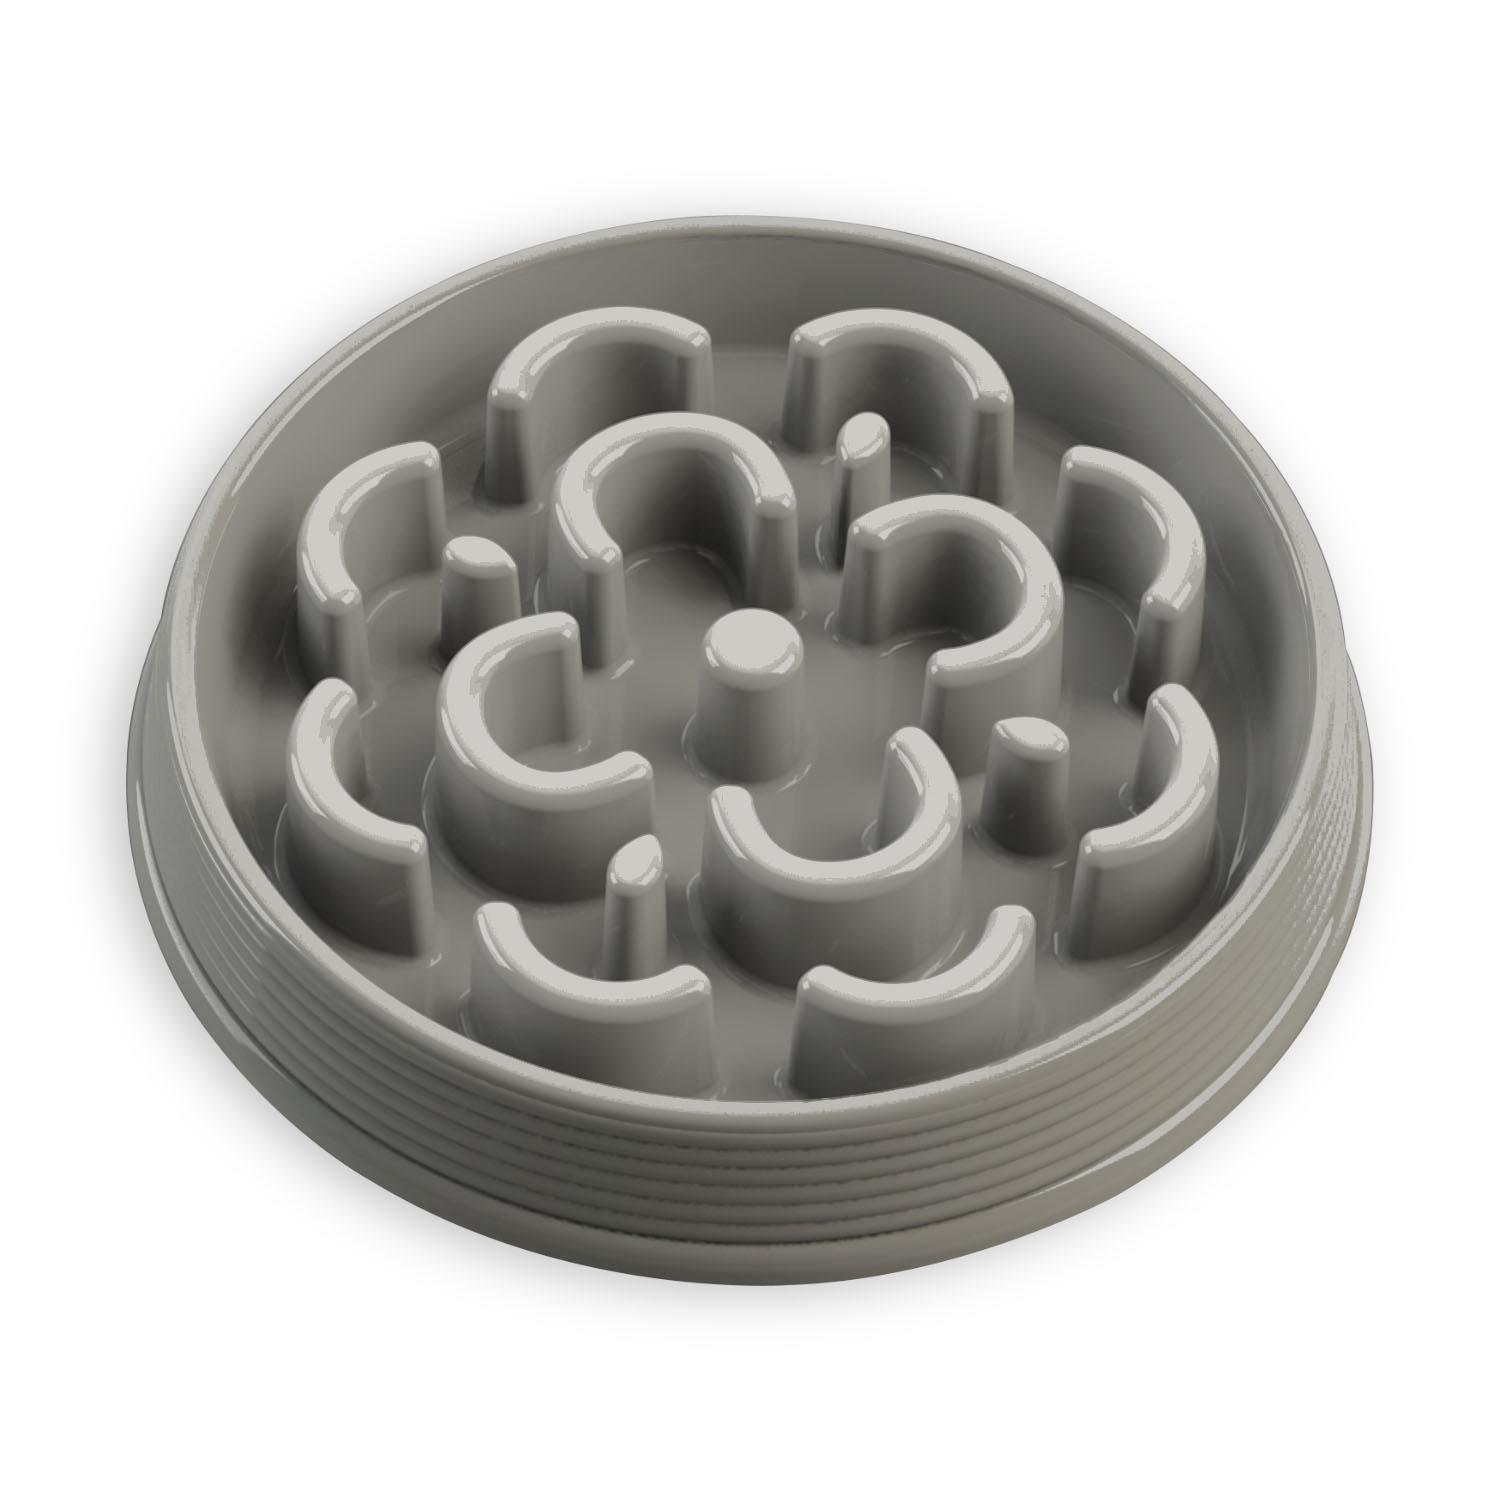 Slow Chow Medallion Feeder by TarHong - Gray